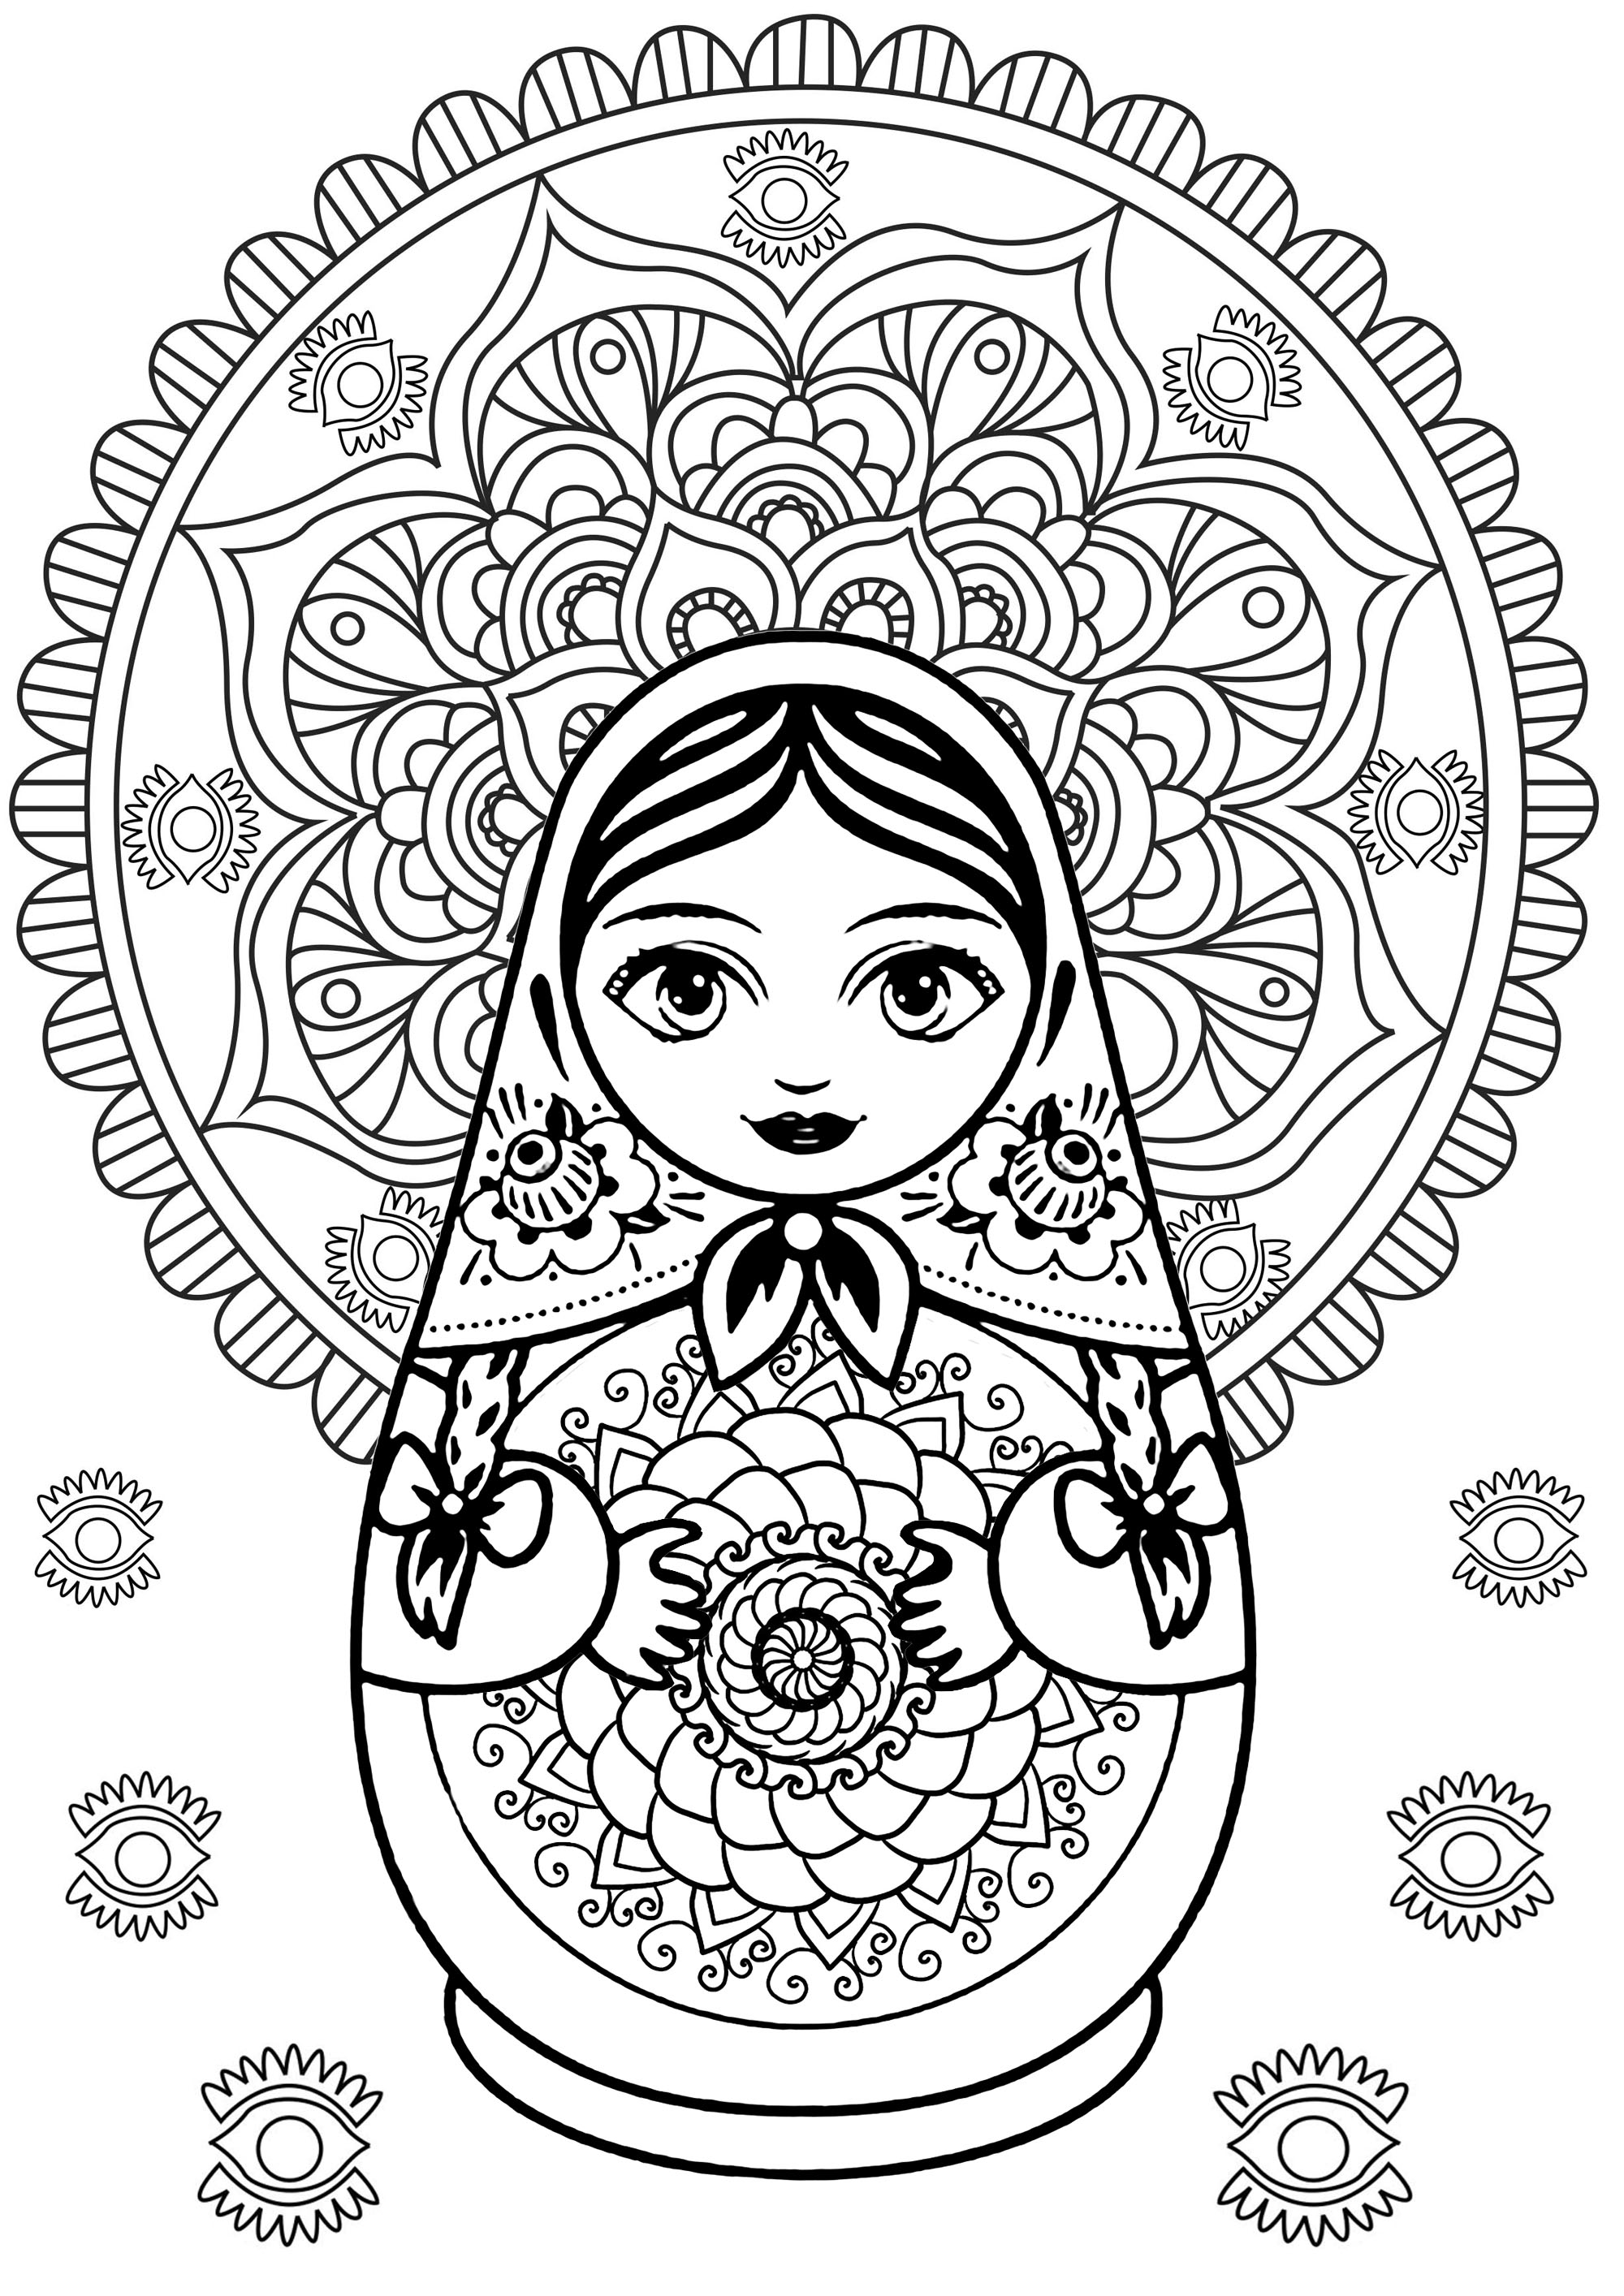 Mandala & Russian doll with original elements